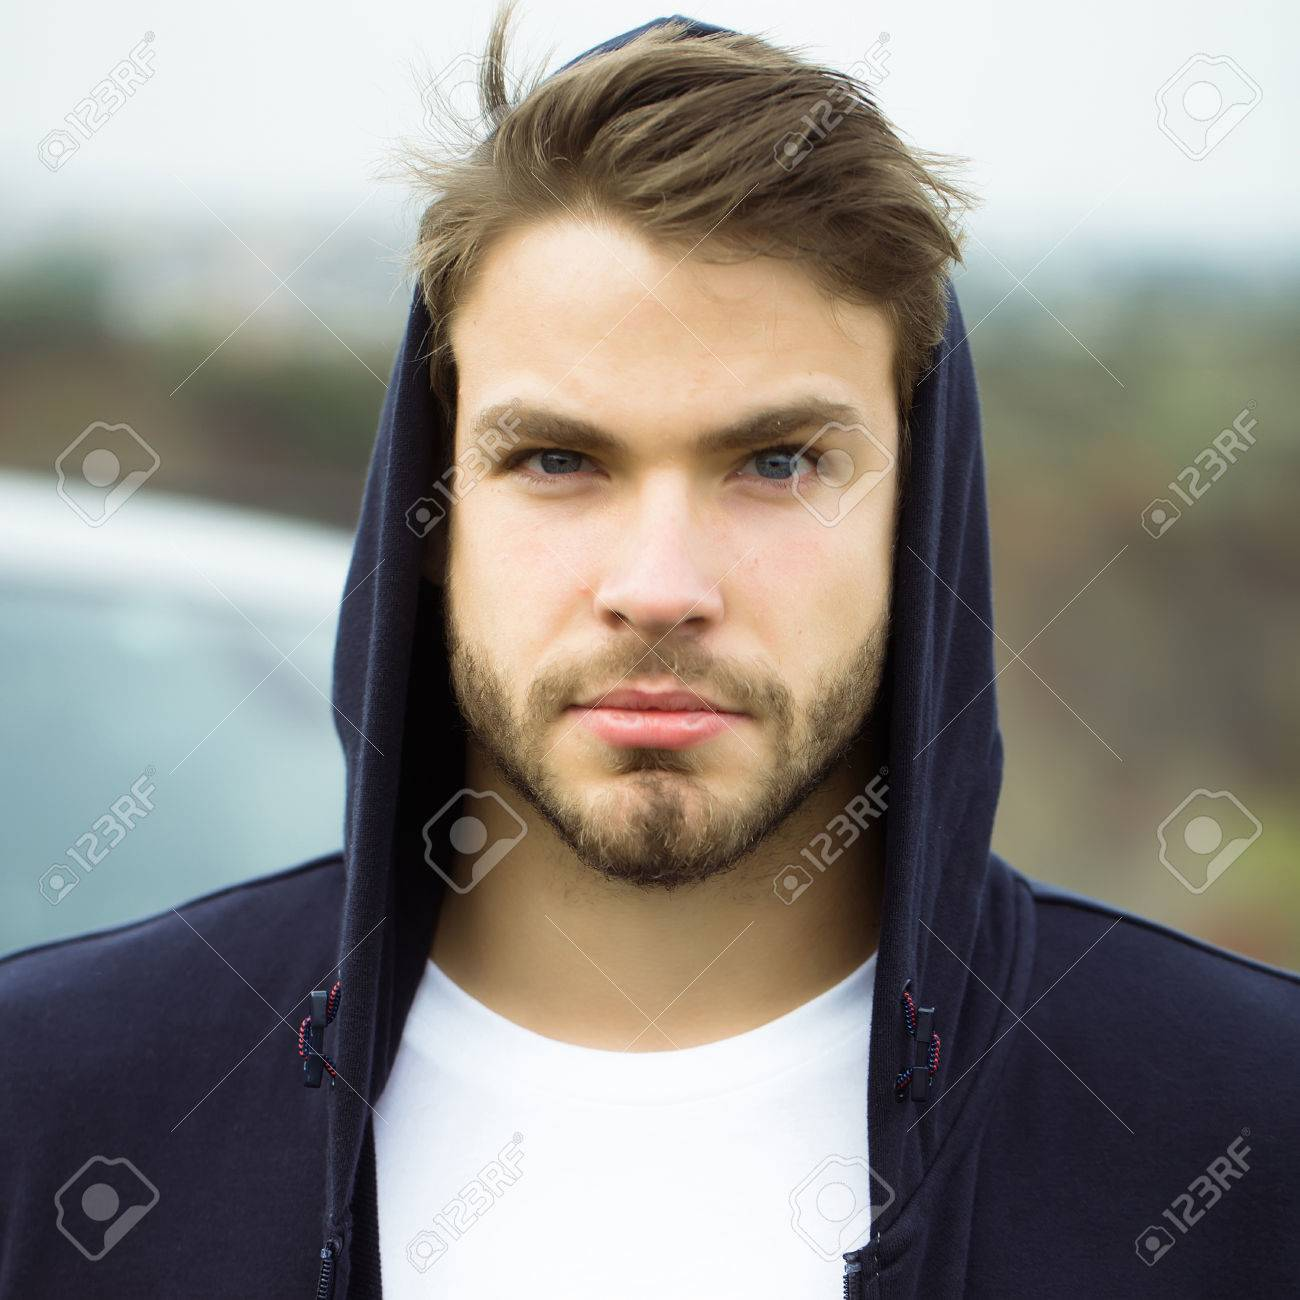 Young Man With Bearded Serious Face Brown Hair And Blue Eyes Stock